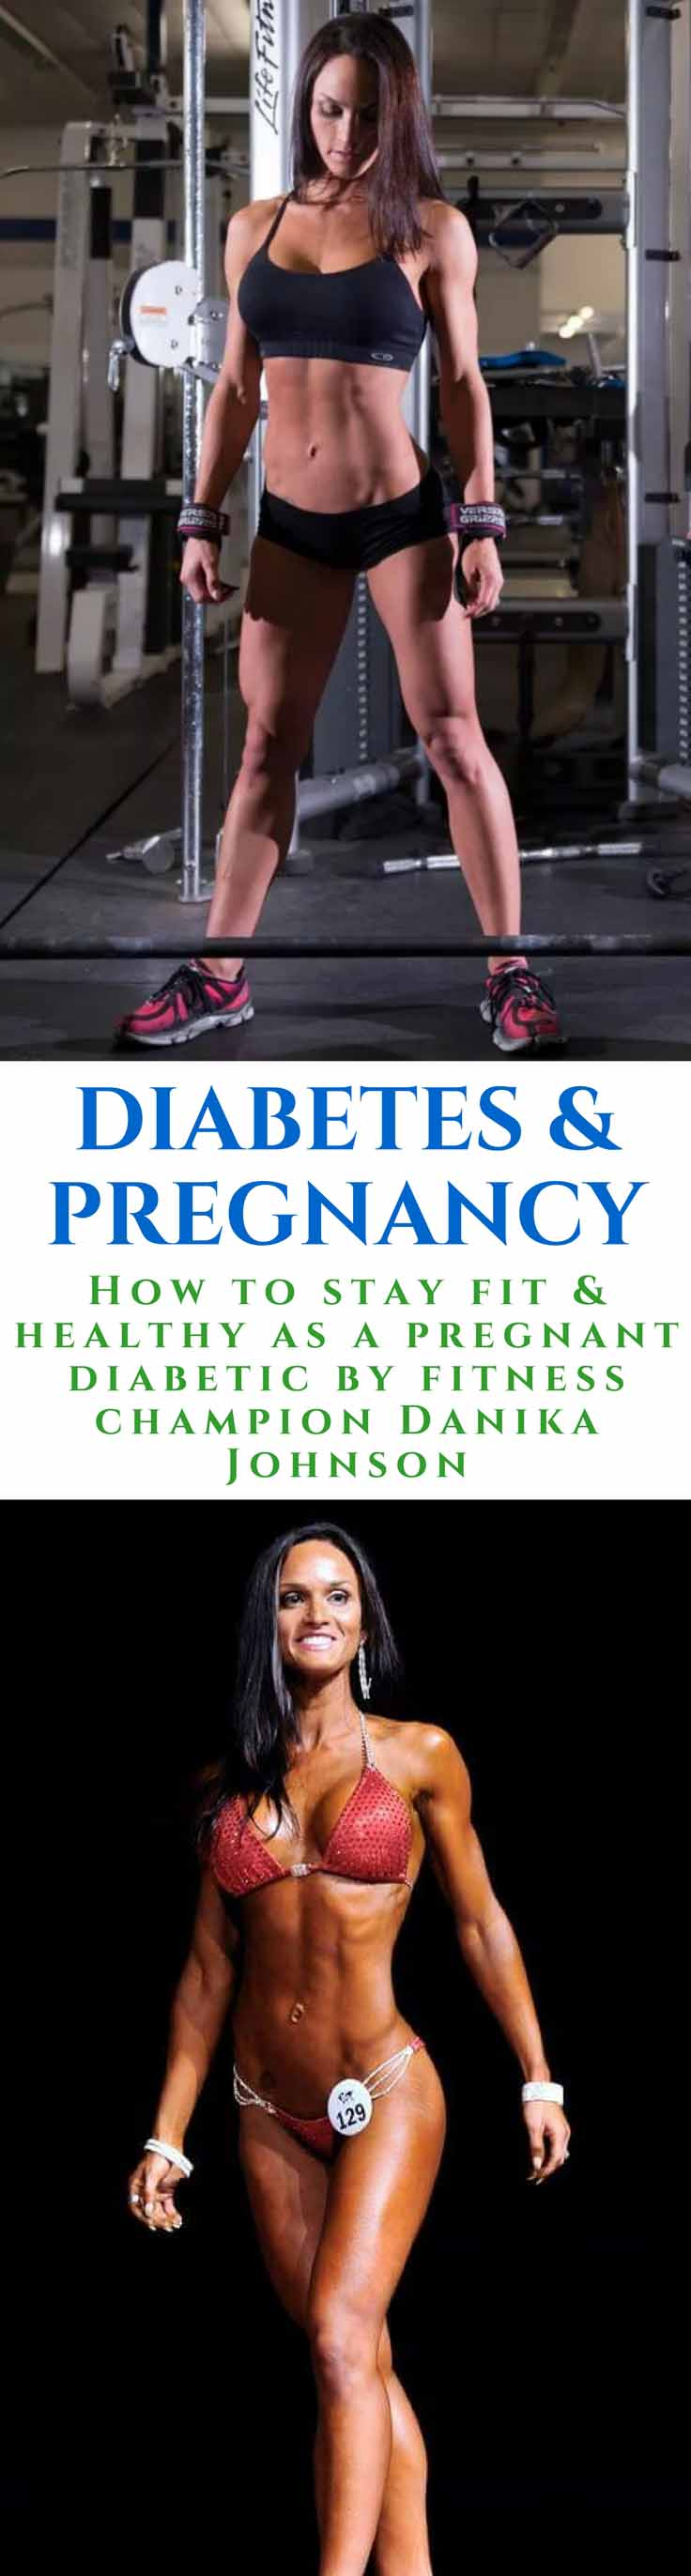 Working out while pregnant can be difficult, especially if you have type 1 diabetes. In this article, fitness champion Danika Johnson shares her story and advice on how to work out as a pregnant diabetic